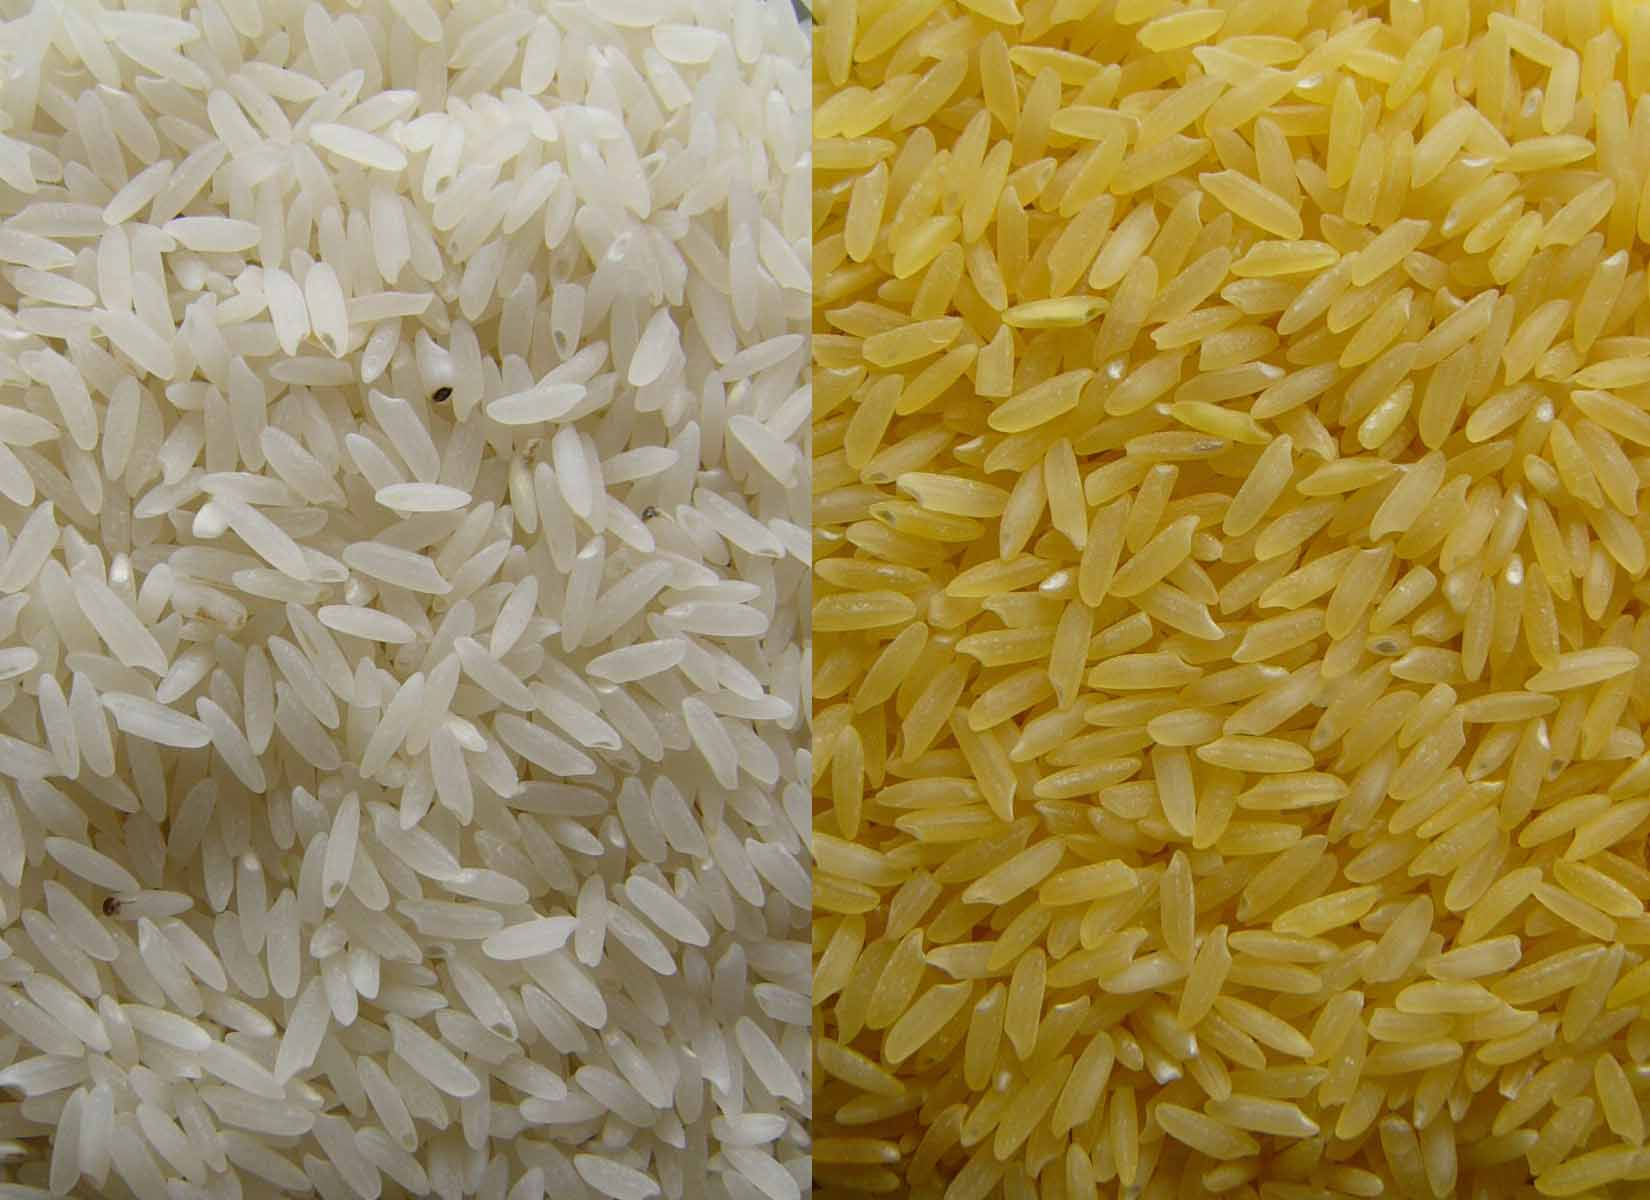 Comparison of wild type and golden rice. Via Goldenrice.org.